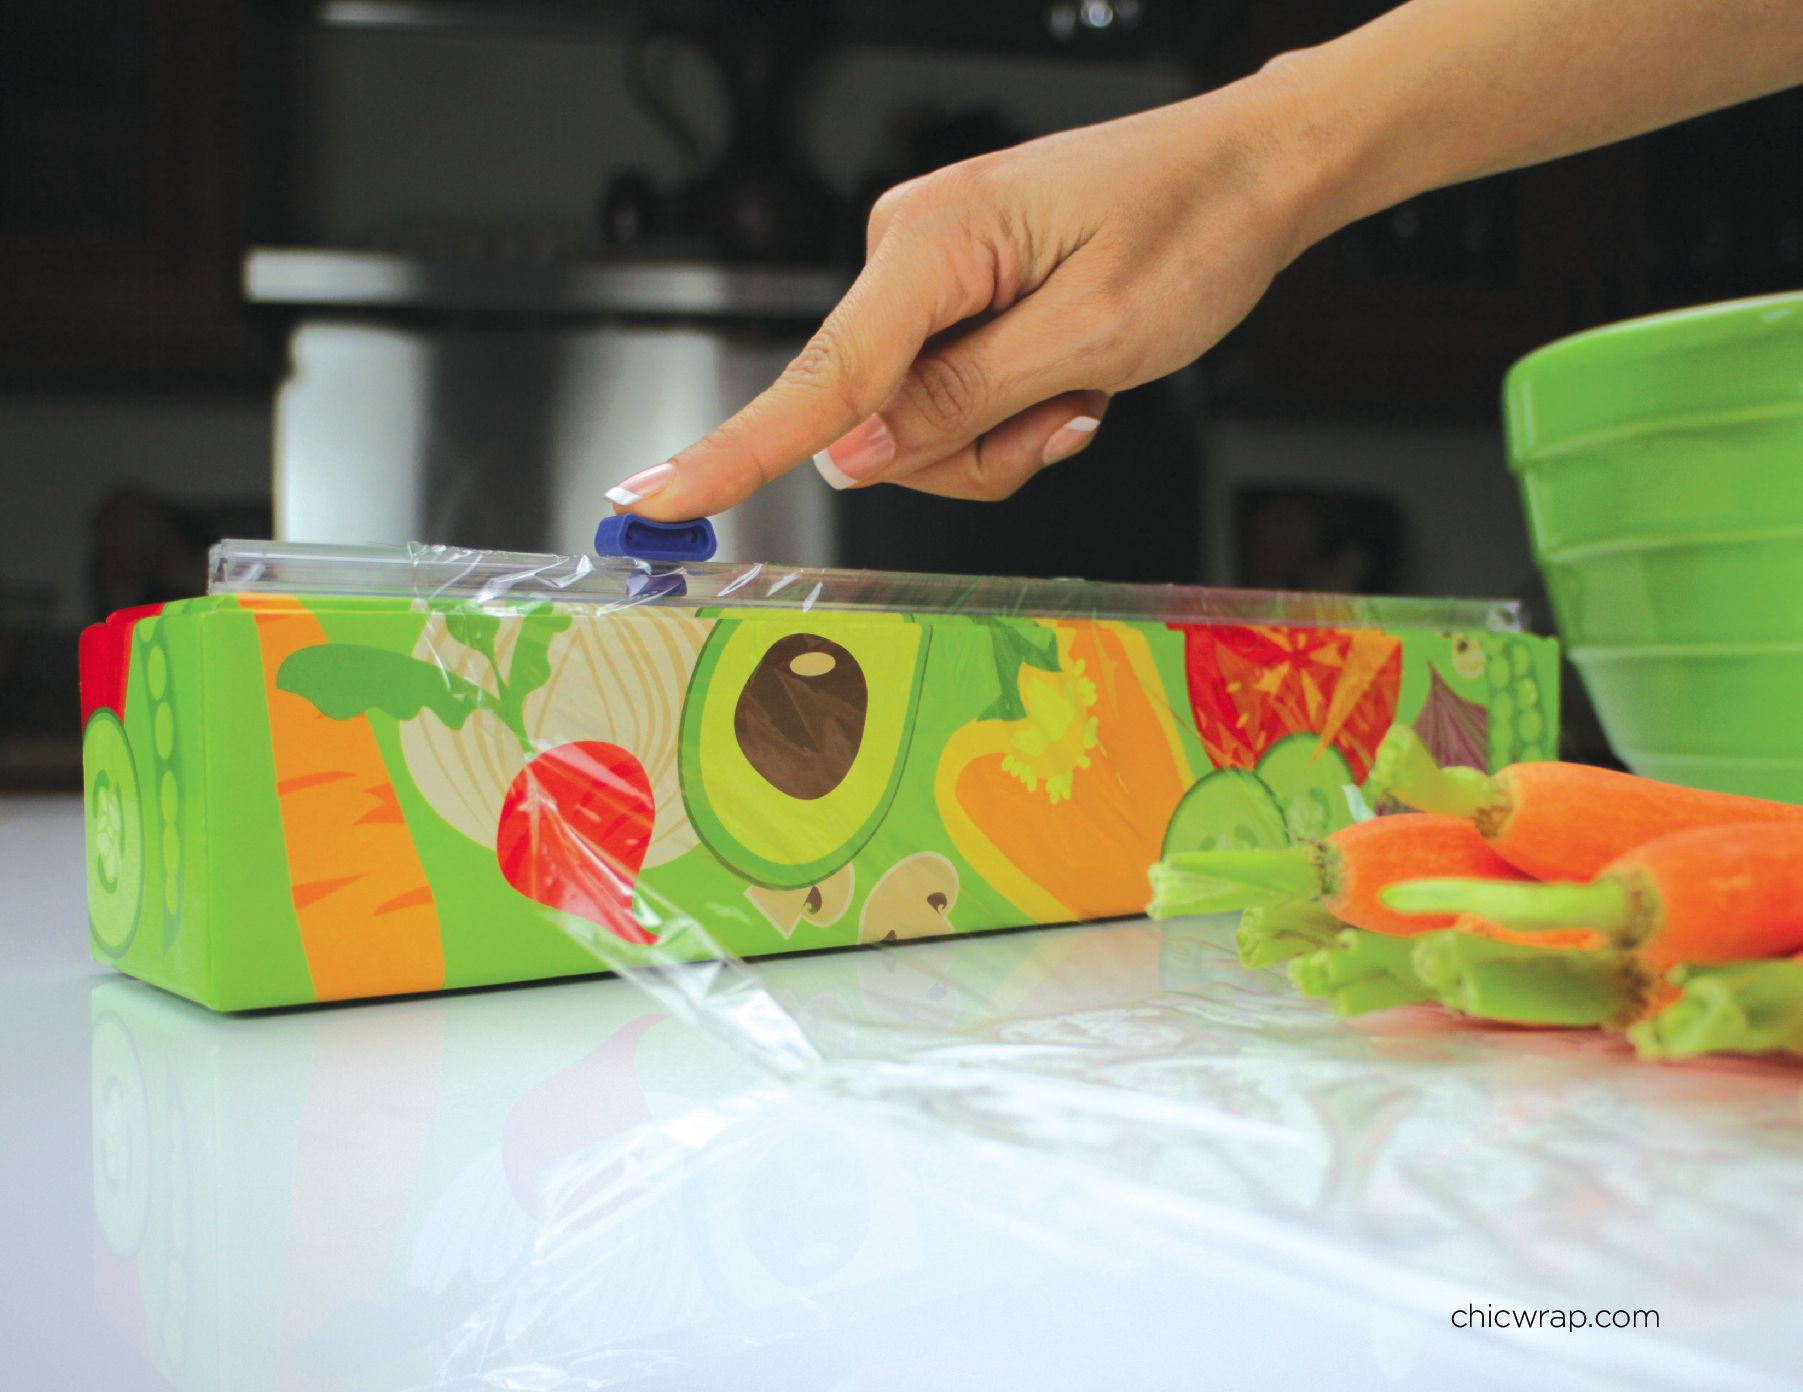 ChicWrap Veggies is a nice reminder to protect your veggies.